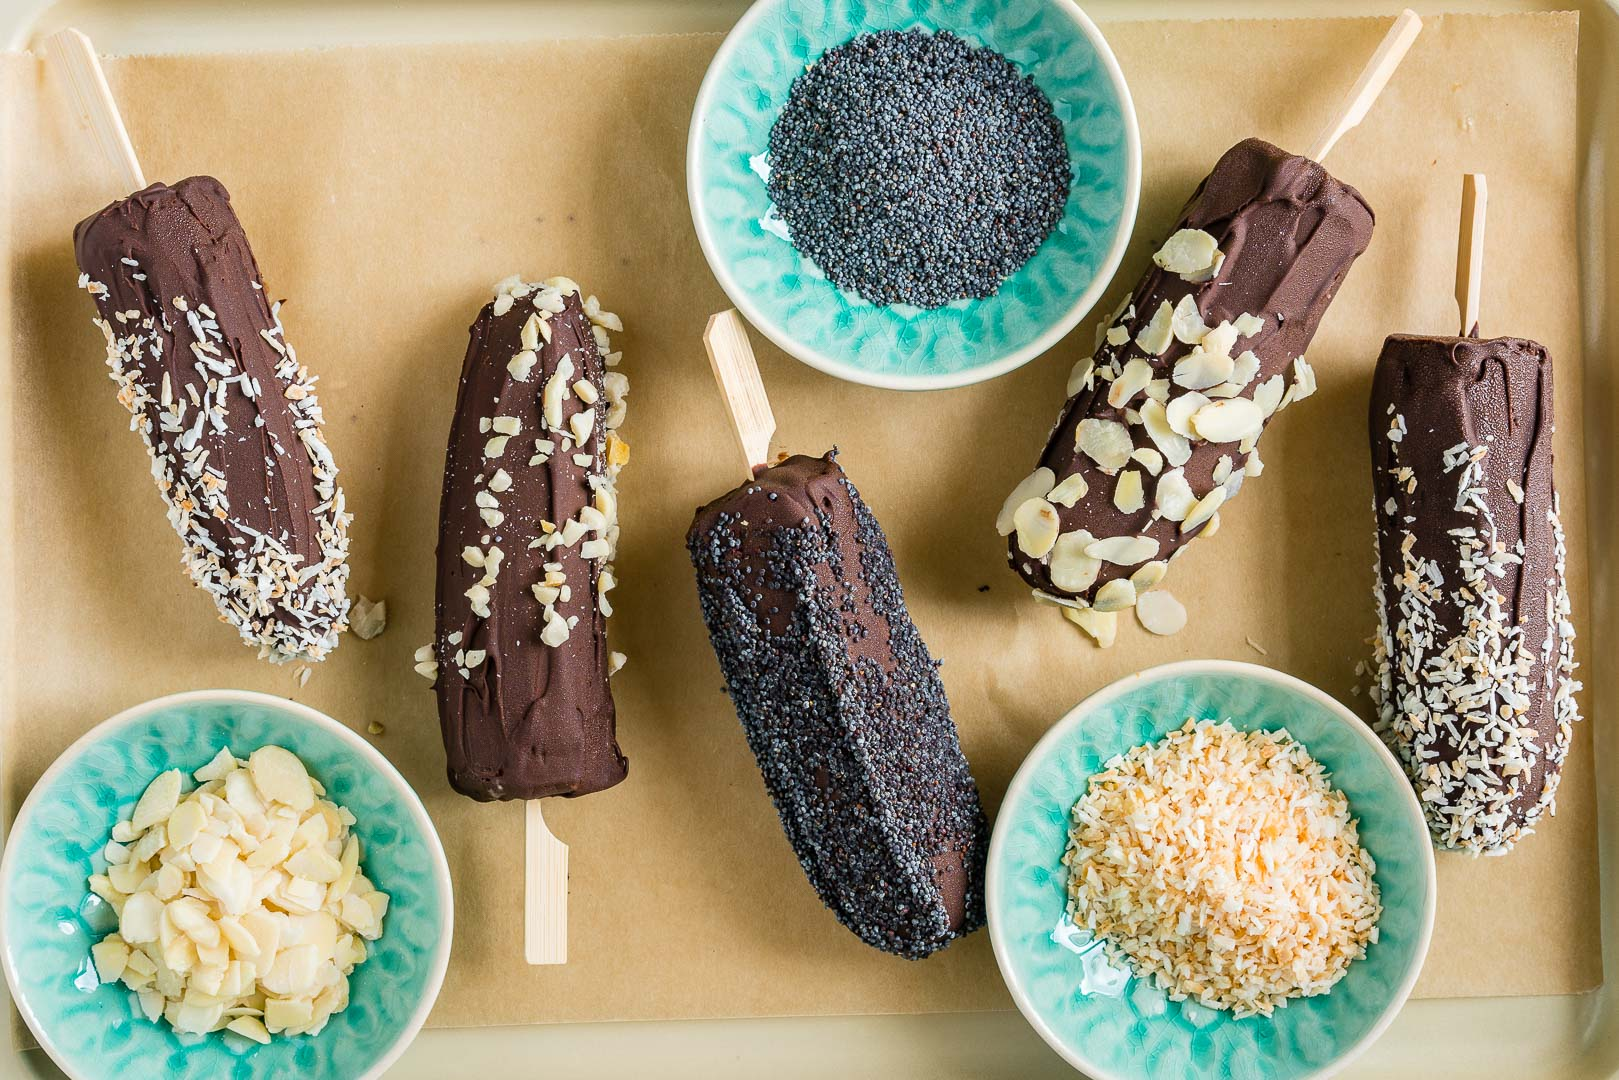 Frozen Banana Pops Ingredients